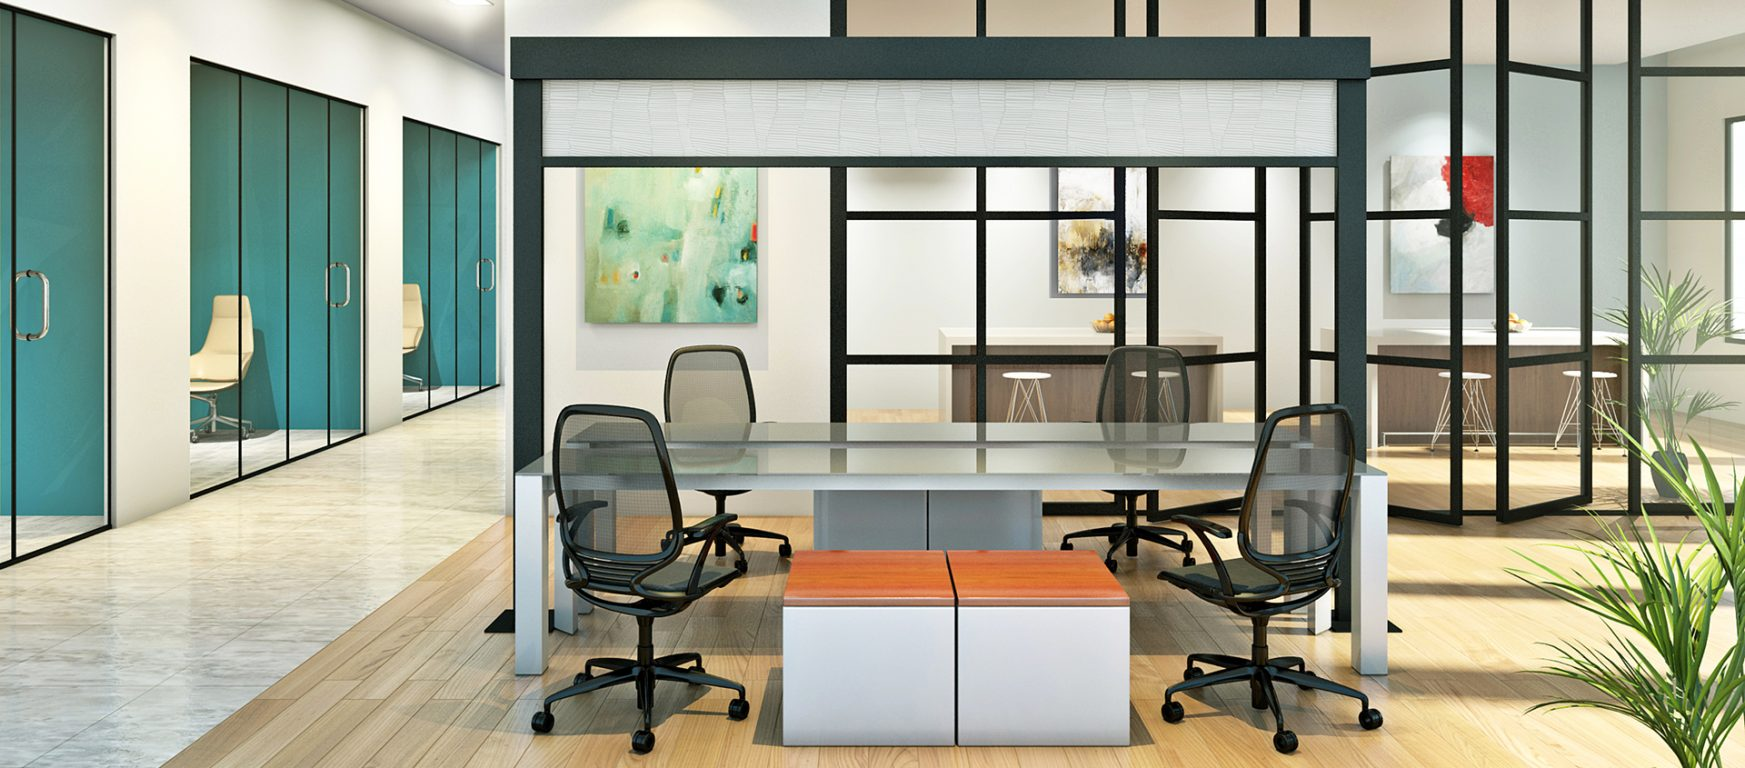 Tudelu Vertical Retractable room divider